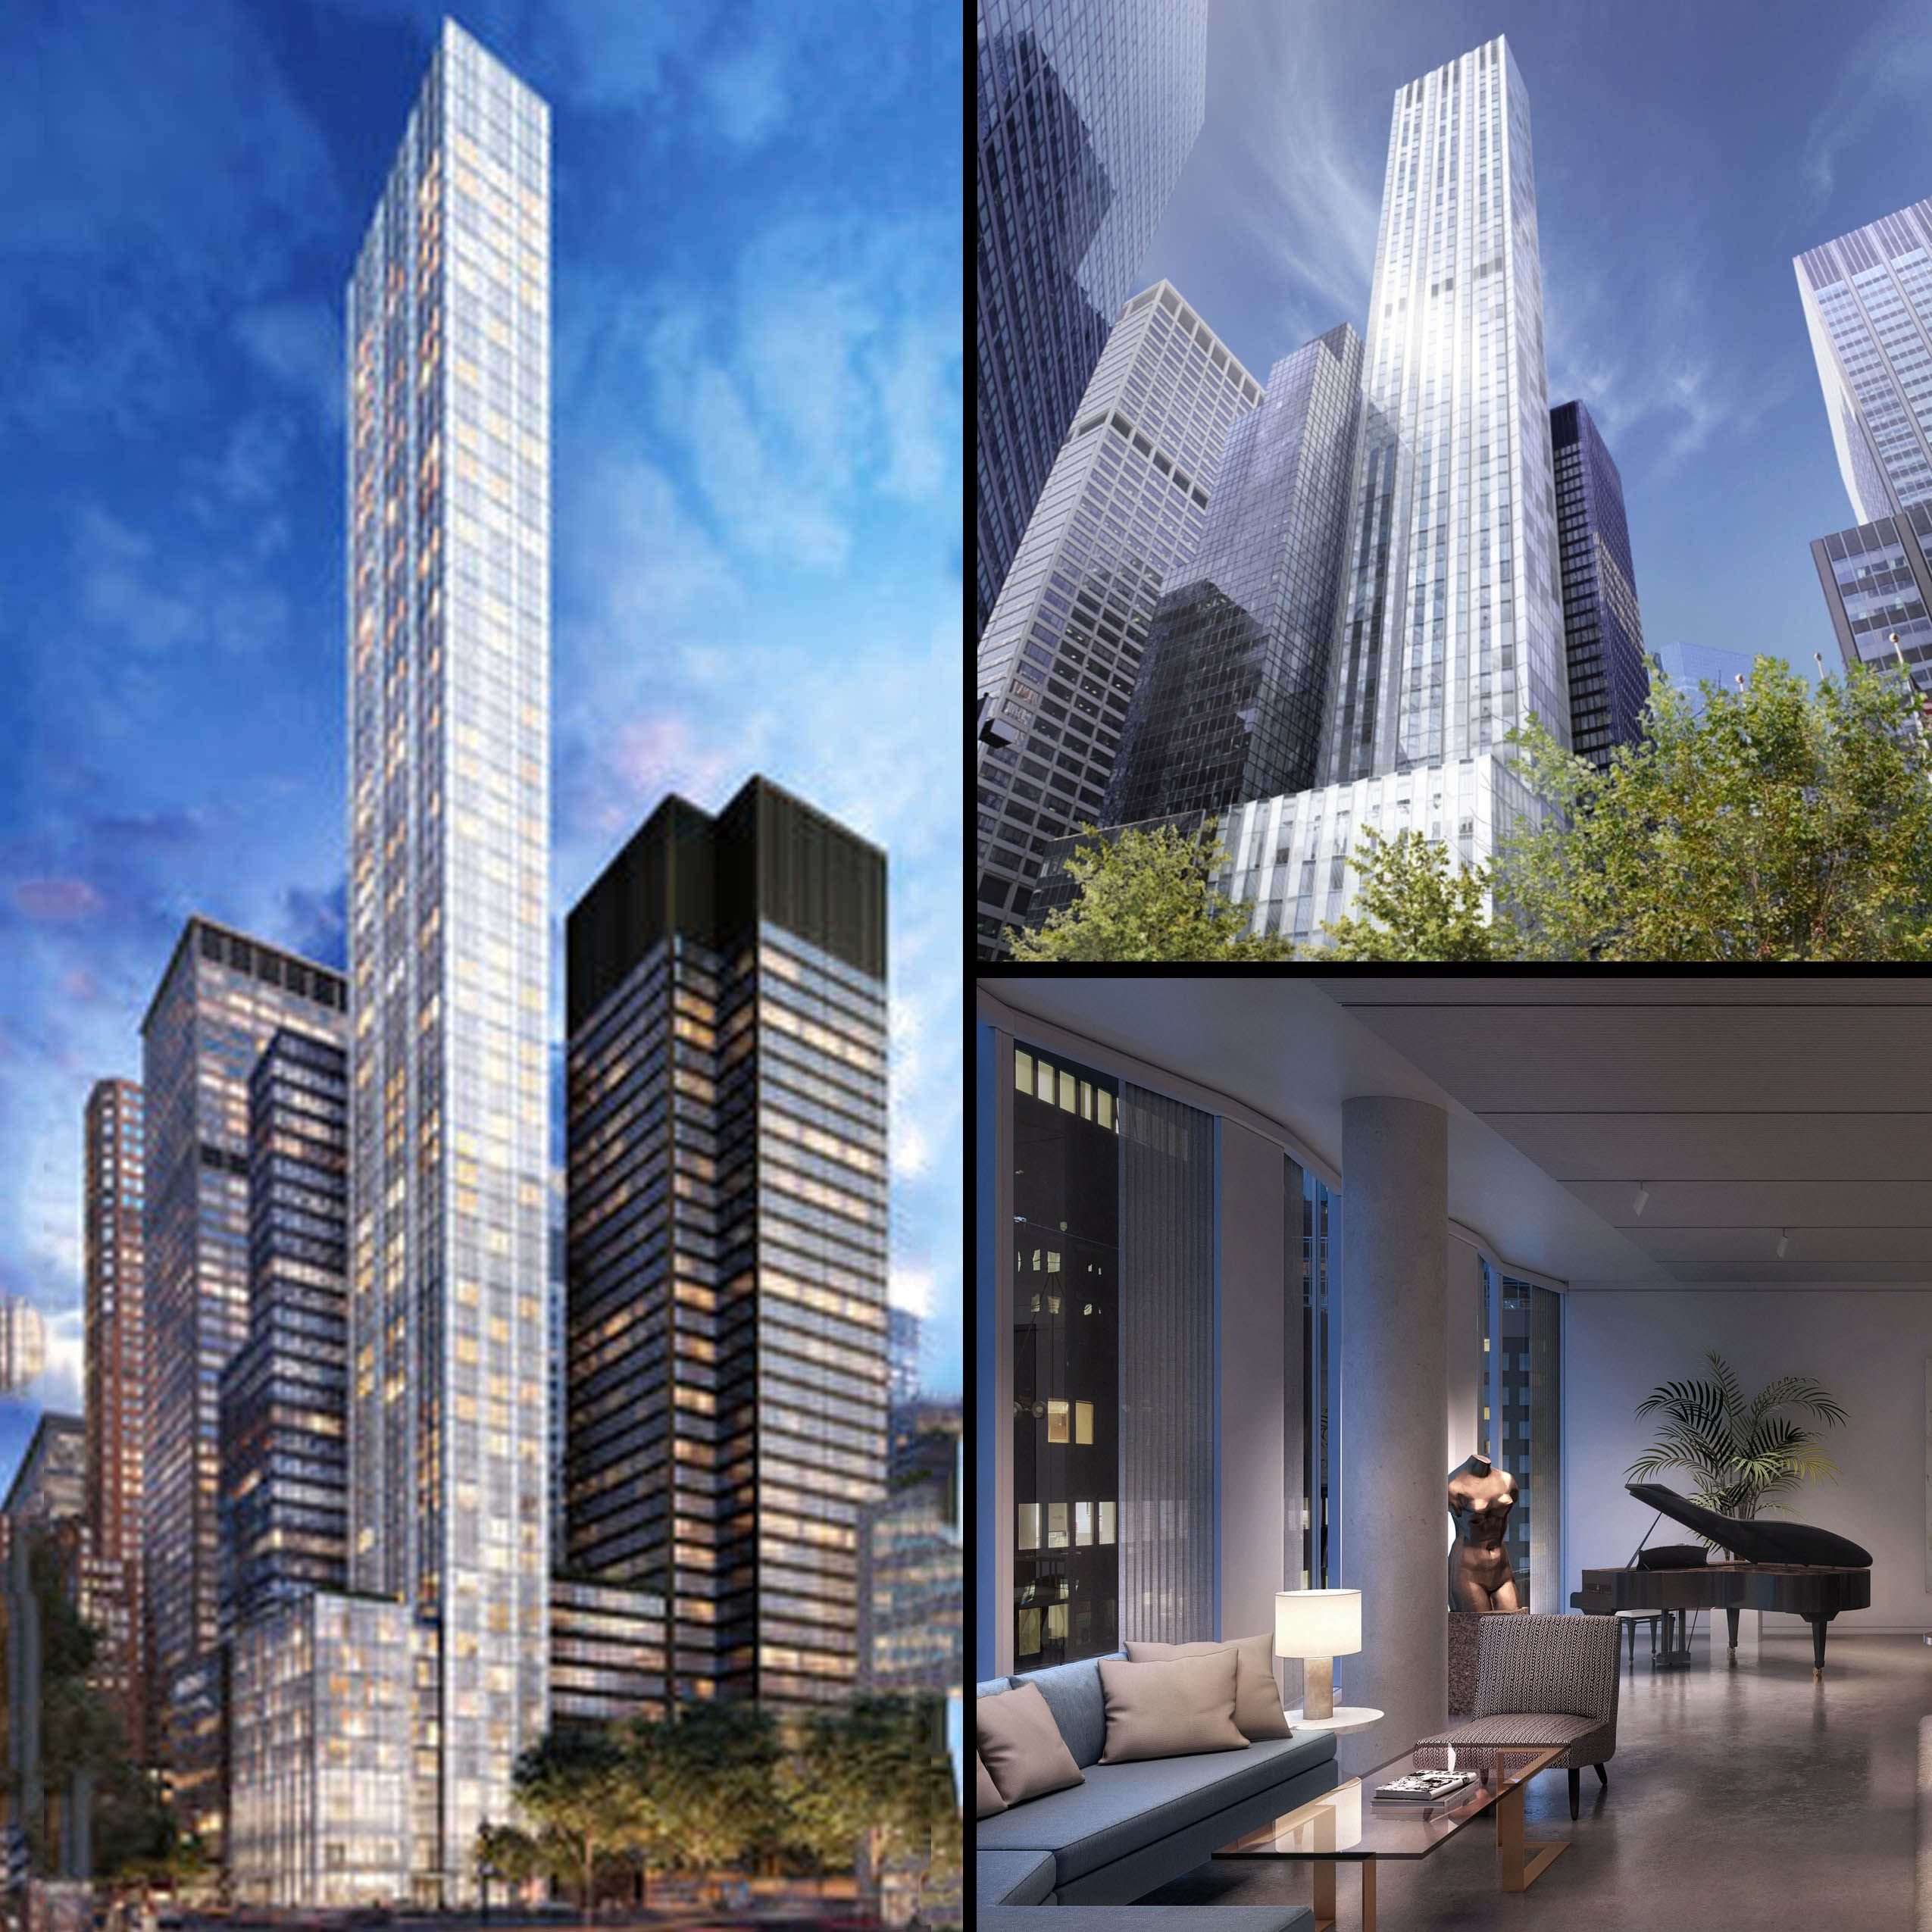 Granite City Apartments: Skyscrapers, 100 East 53rd Street, Norman Foster, Seagram